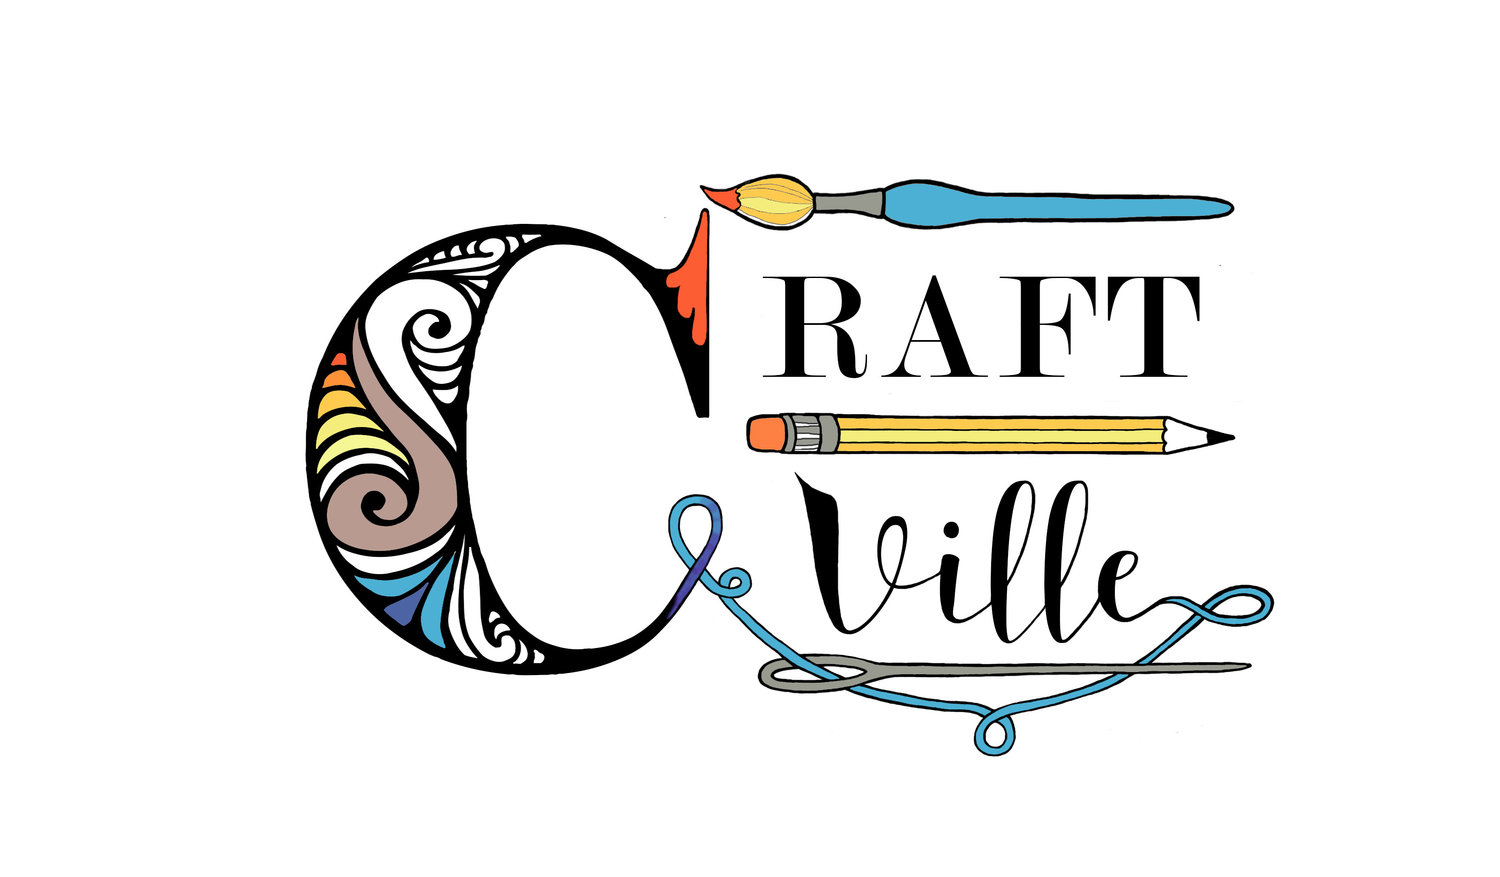 Craft Cville